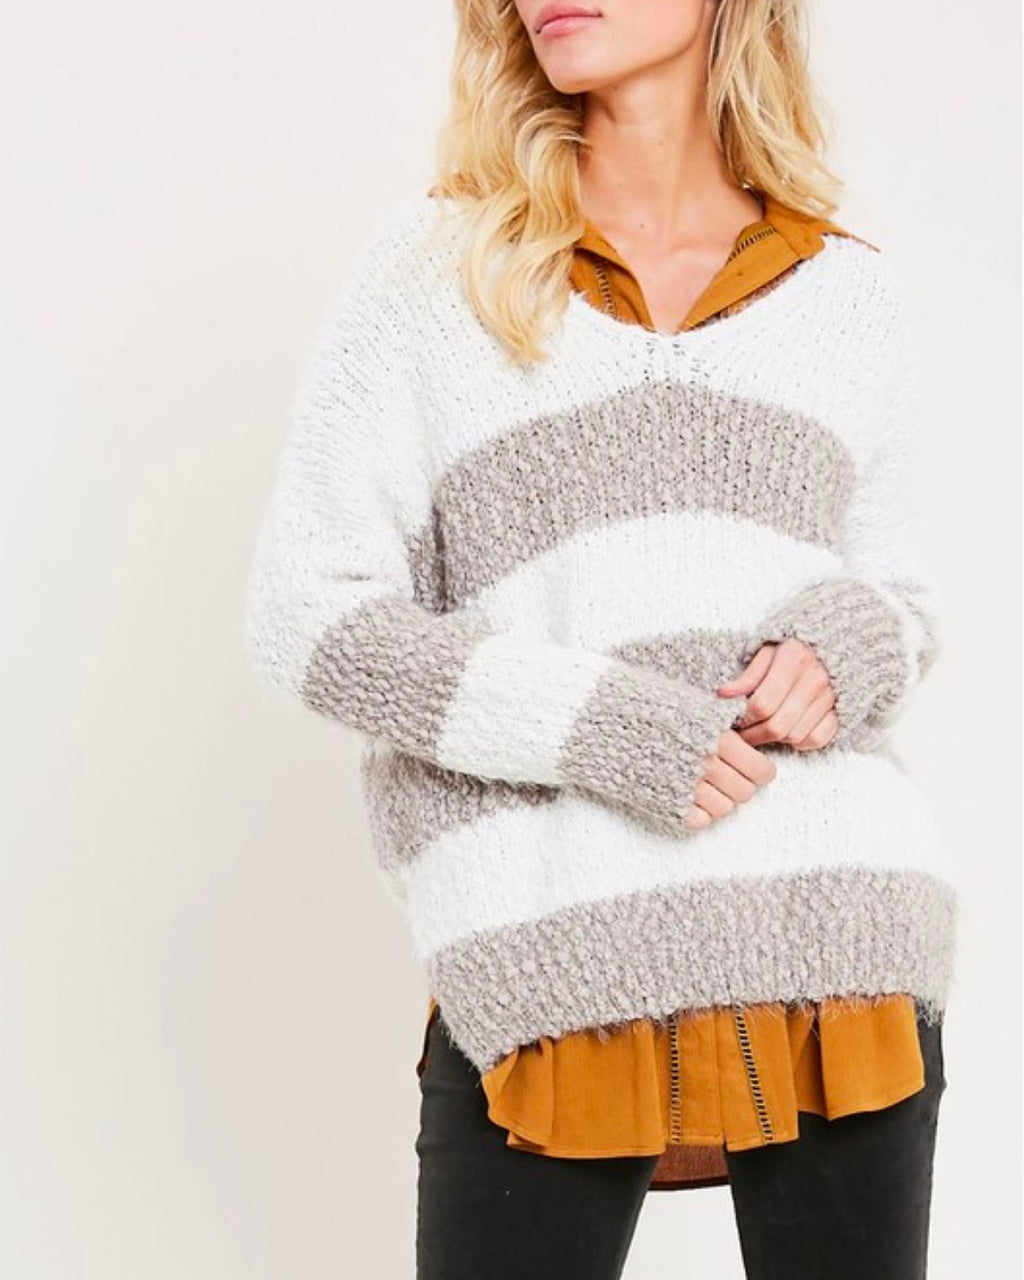 girls like me striped fuzzy knit sweater with side slit in mocha/cream